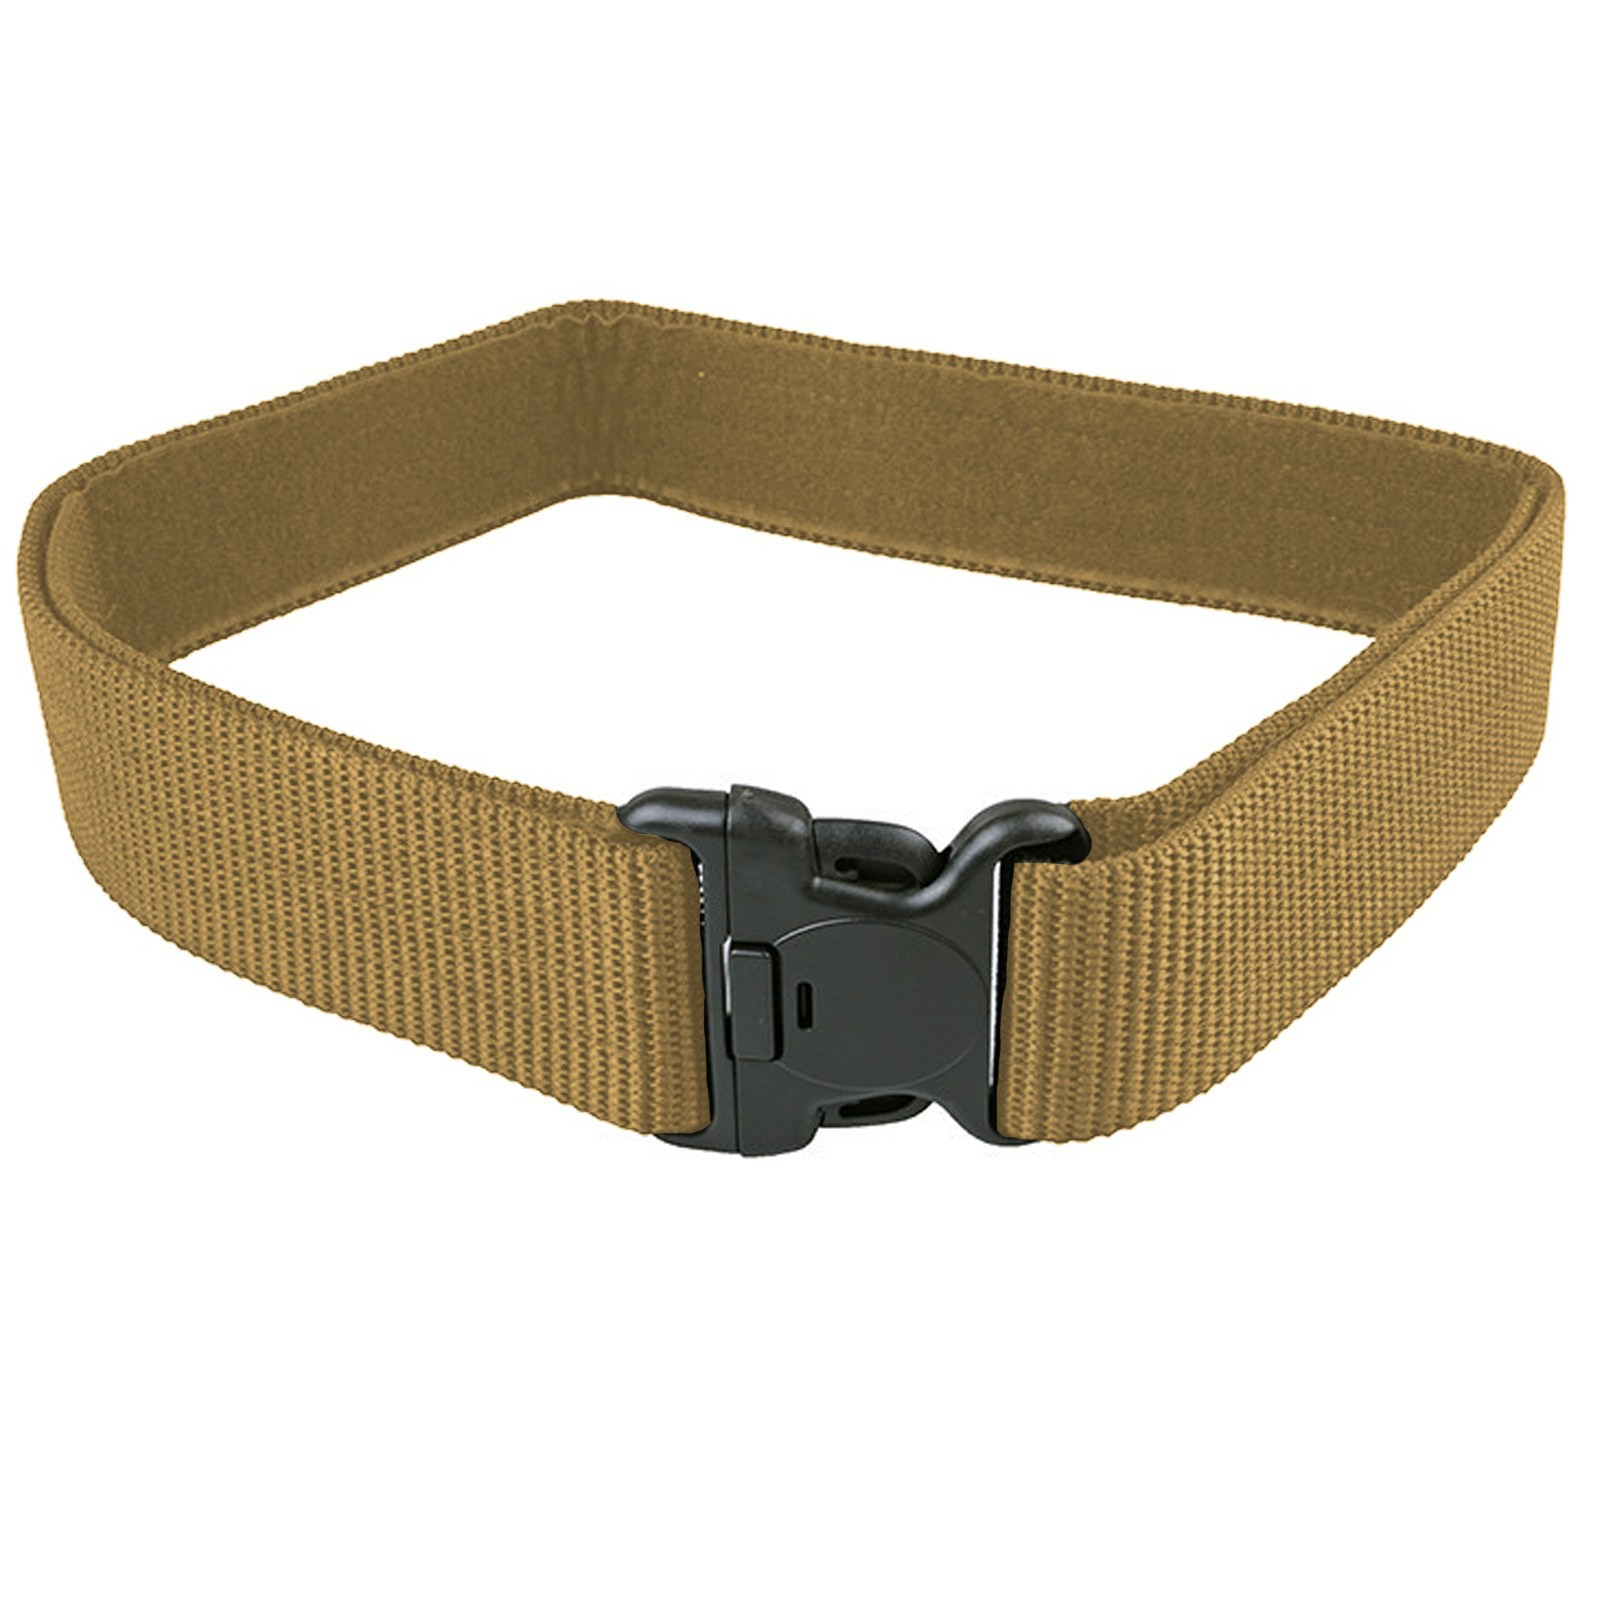 Cinturone Militare in Cordura Tan